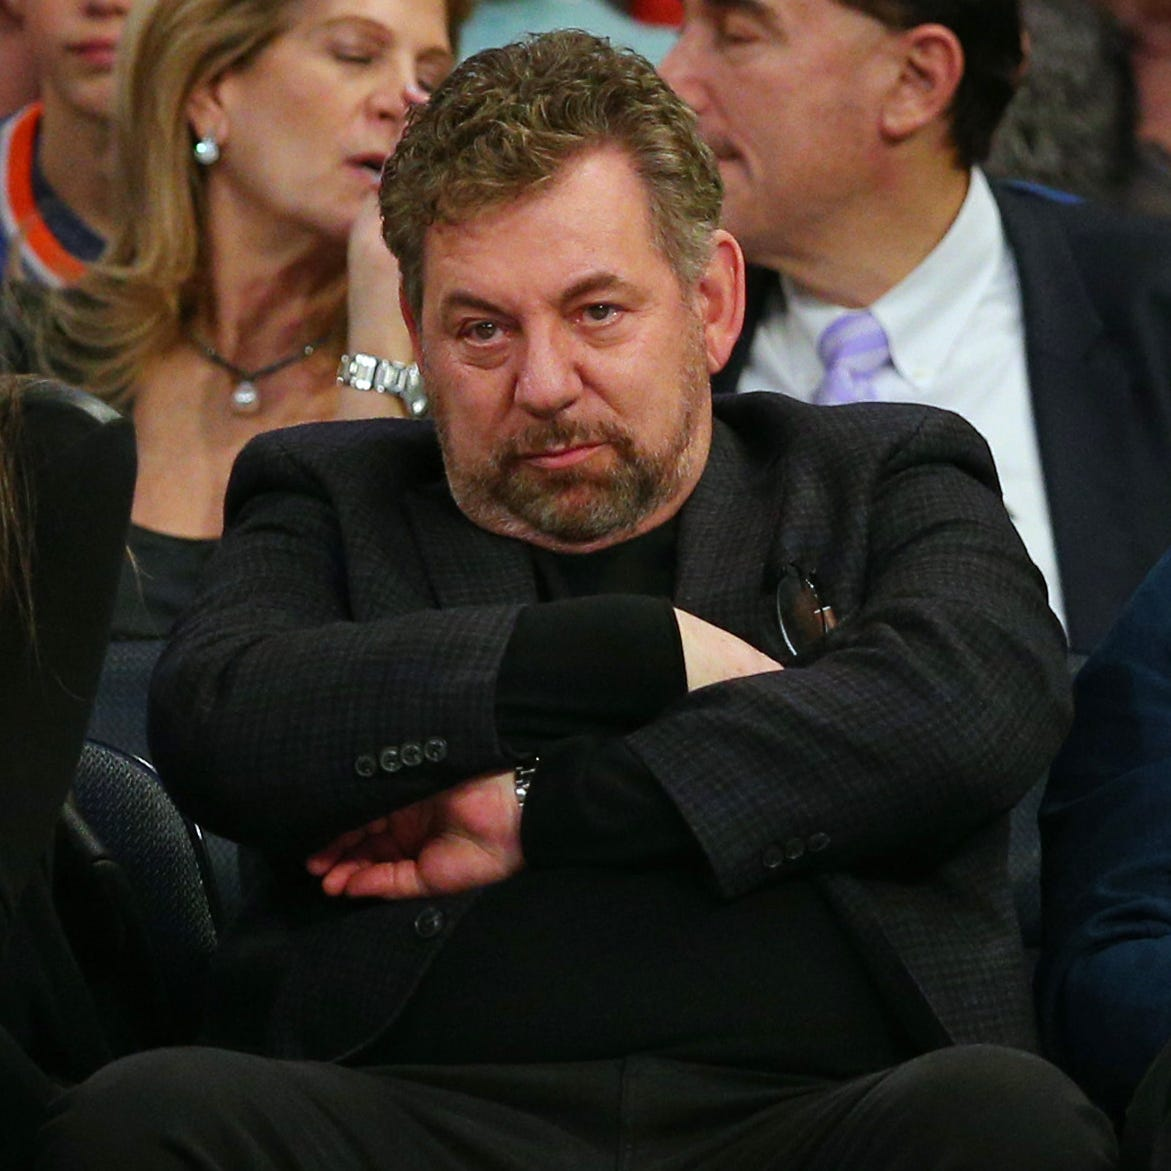 New York senator threatens MSG's tax breaks after James Dolan lashes out at Knicks fan